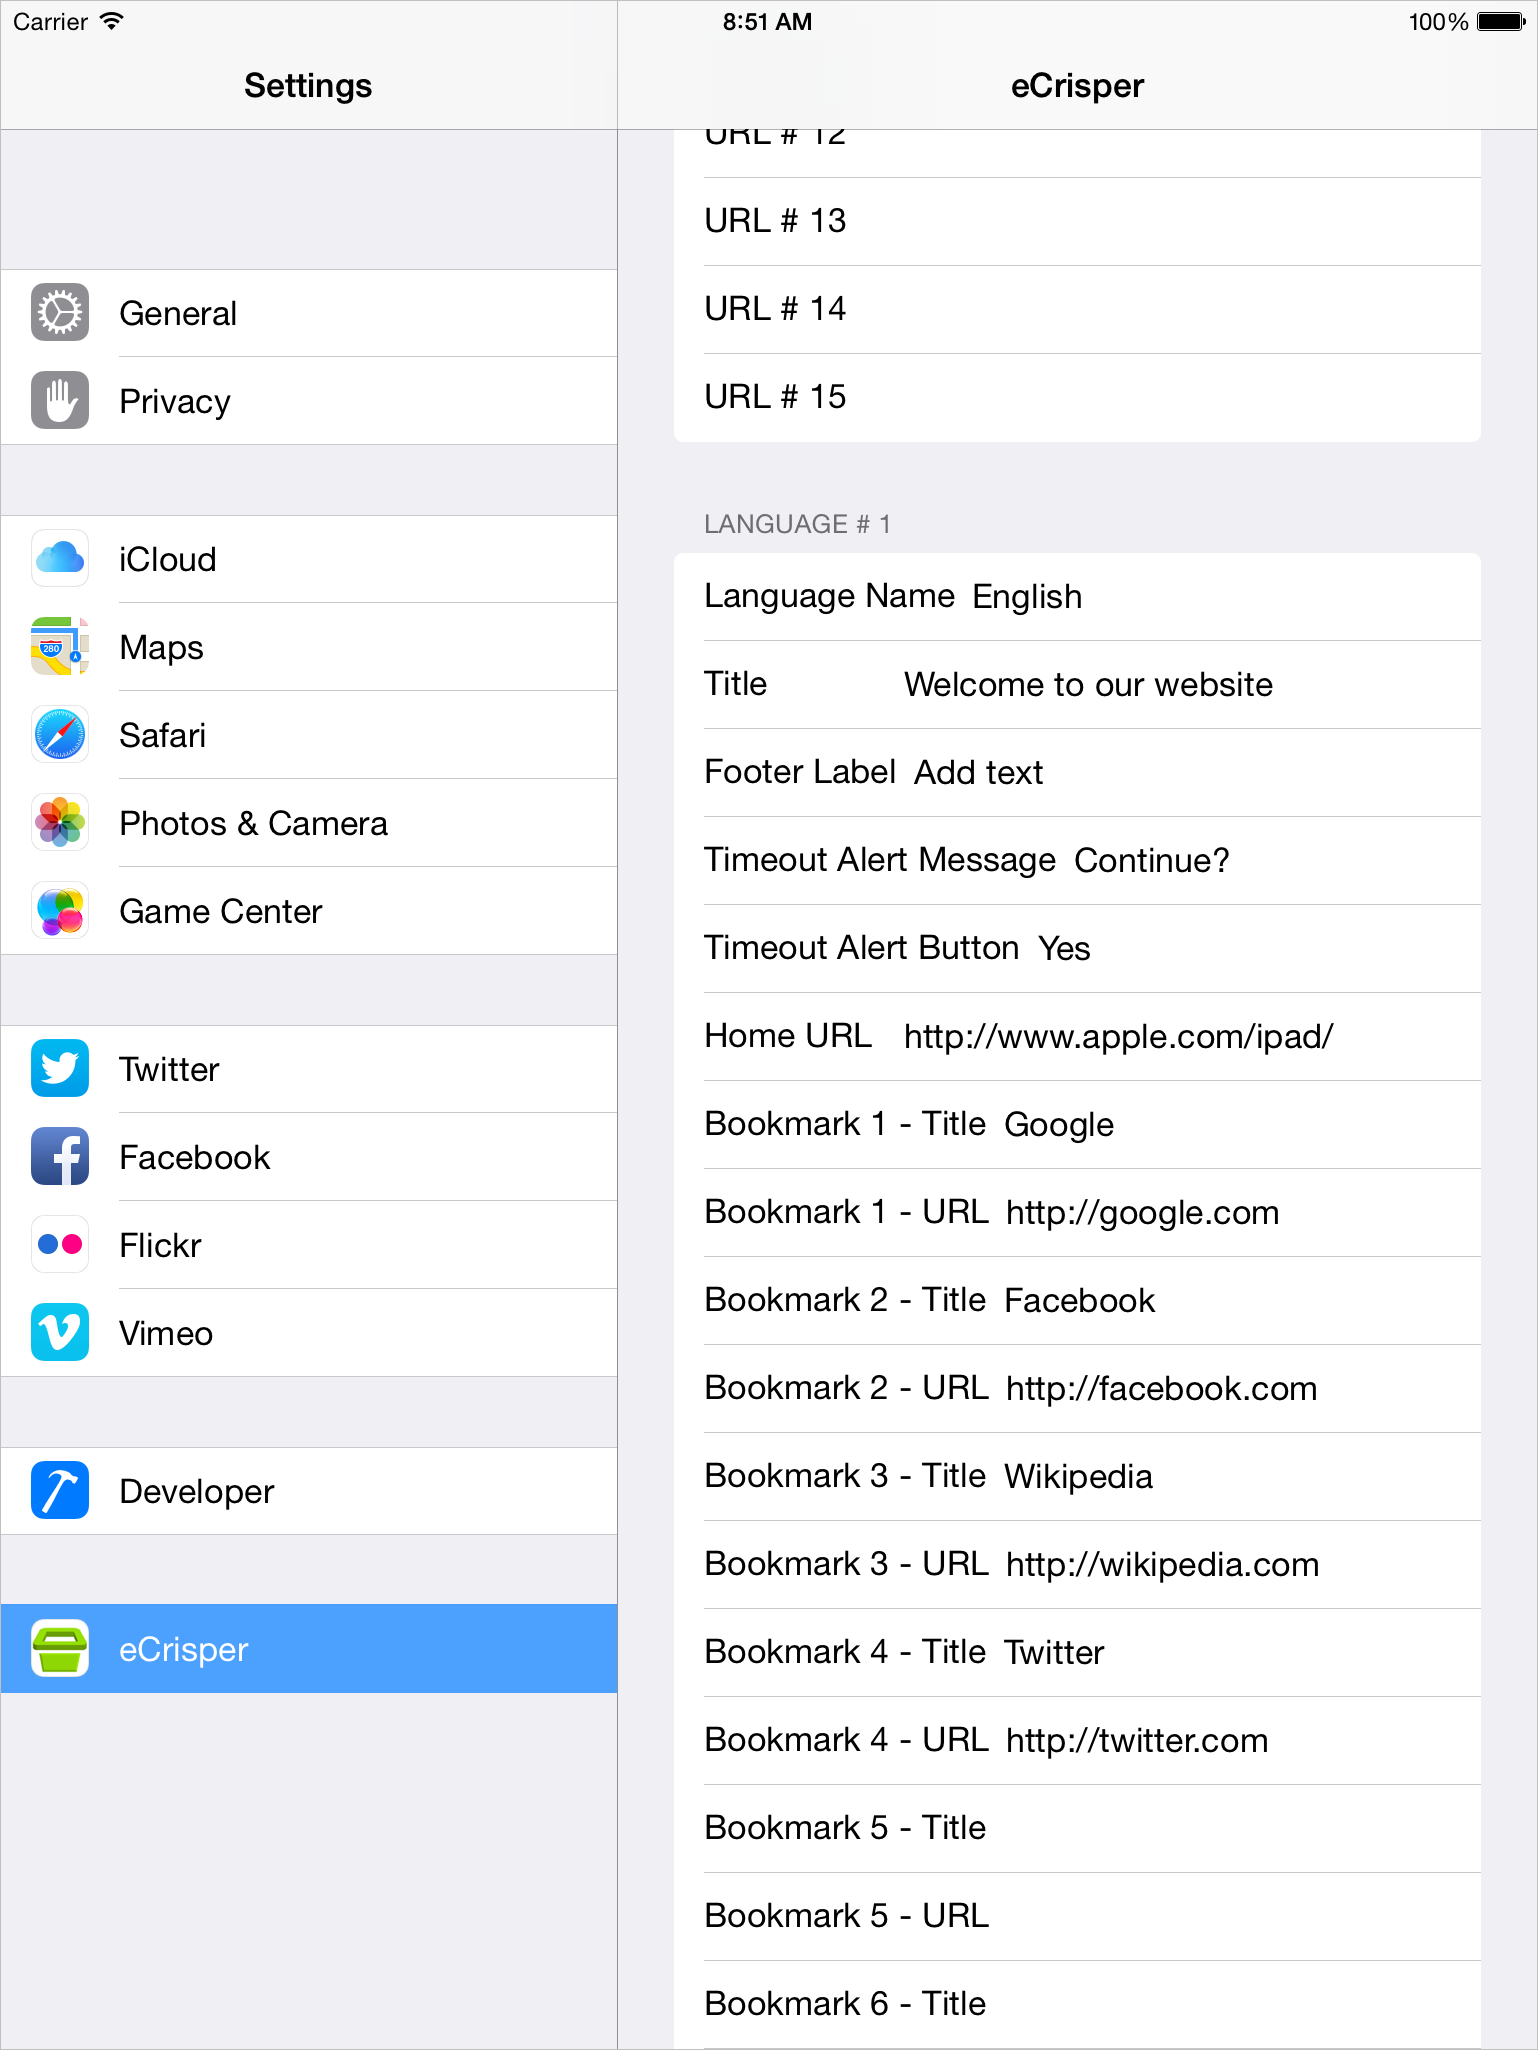 Kiosk Software for iPad - Settings - Screen 3